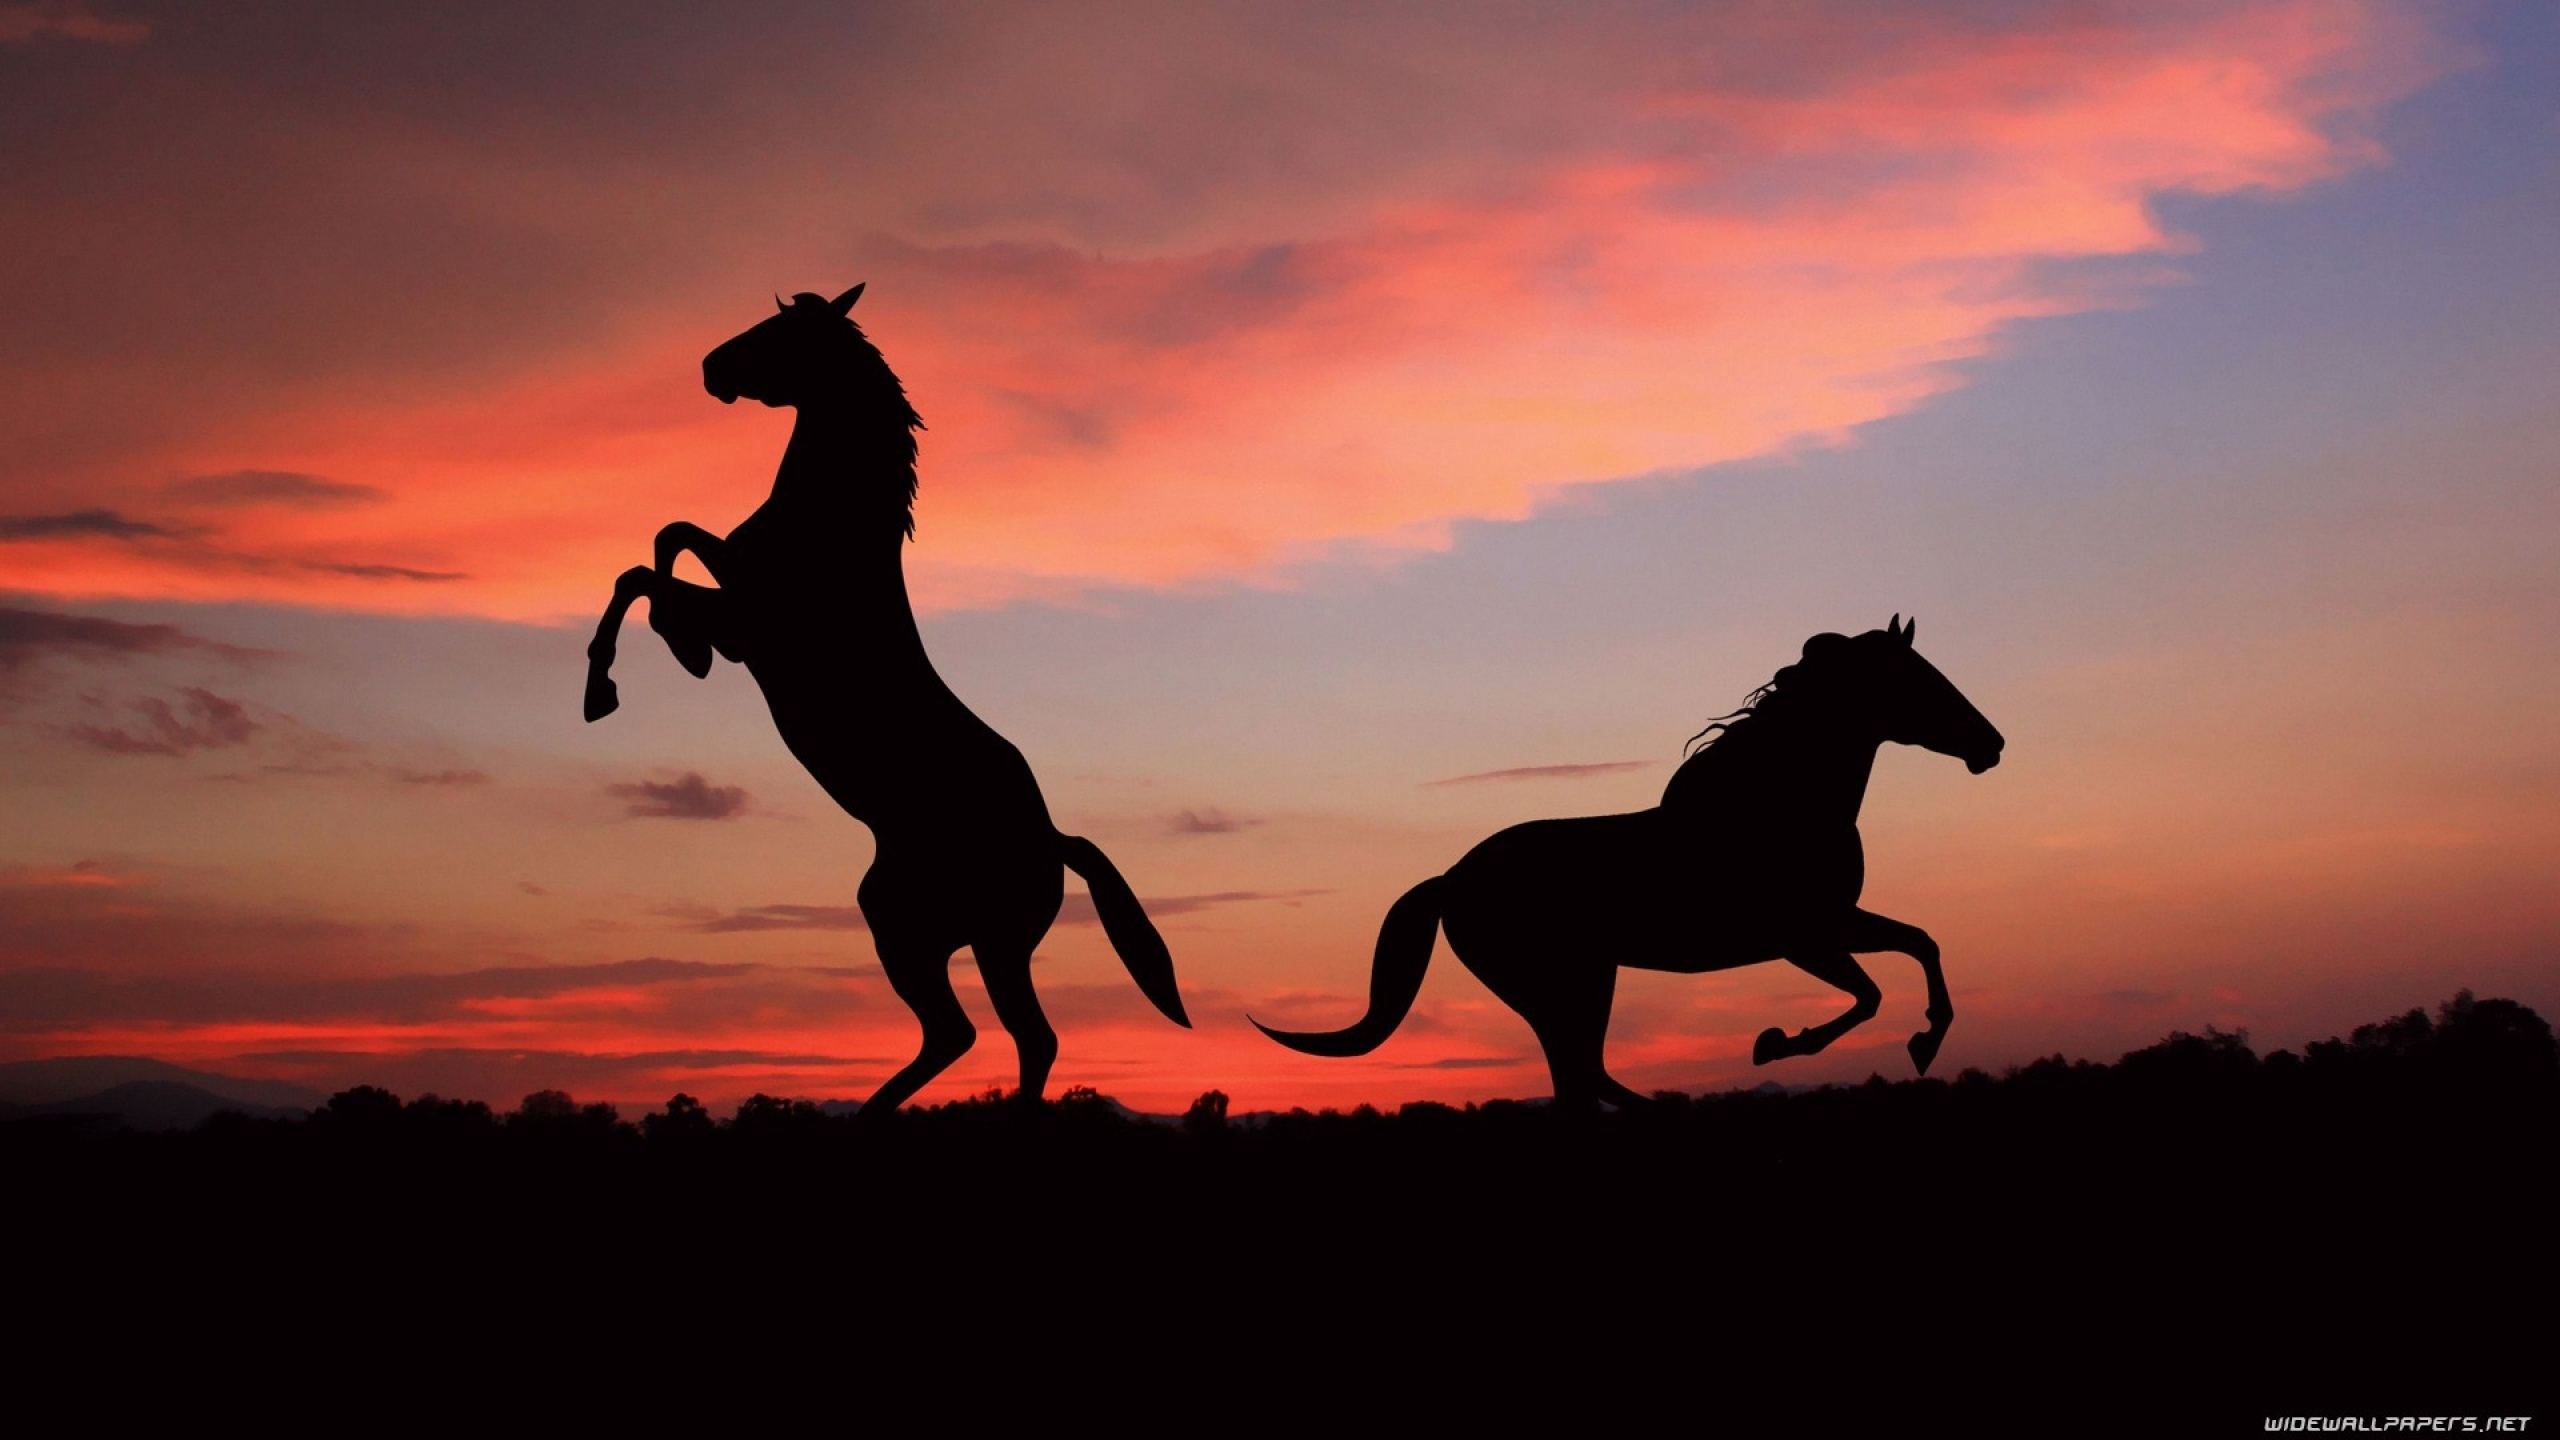 Amazing Wallpaper Horse Dark Brown - tumblr_static_sunset_clouds_nature_animals_h_2560x1440_wallpaperhi  Pictures_429177.jpg